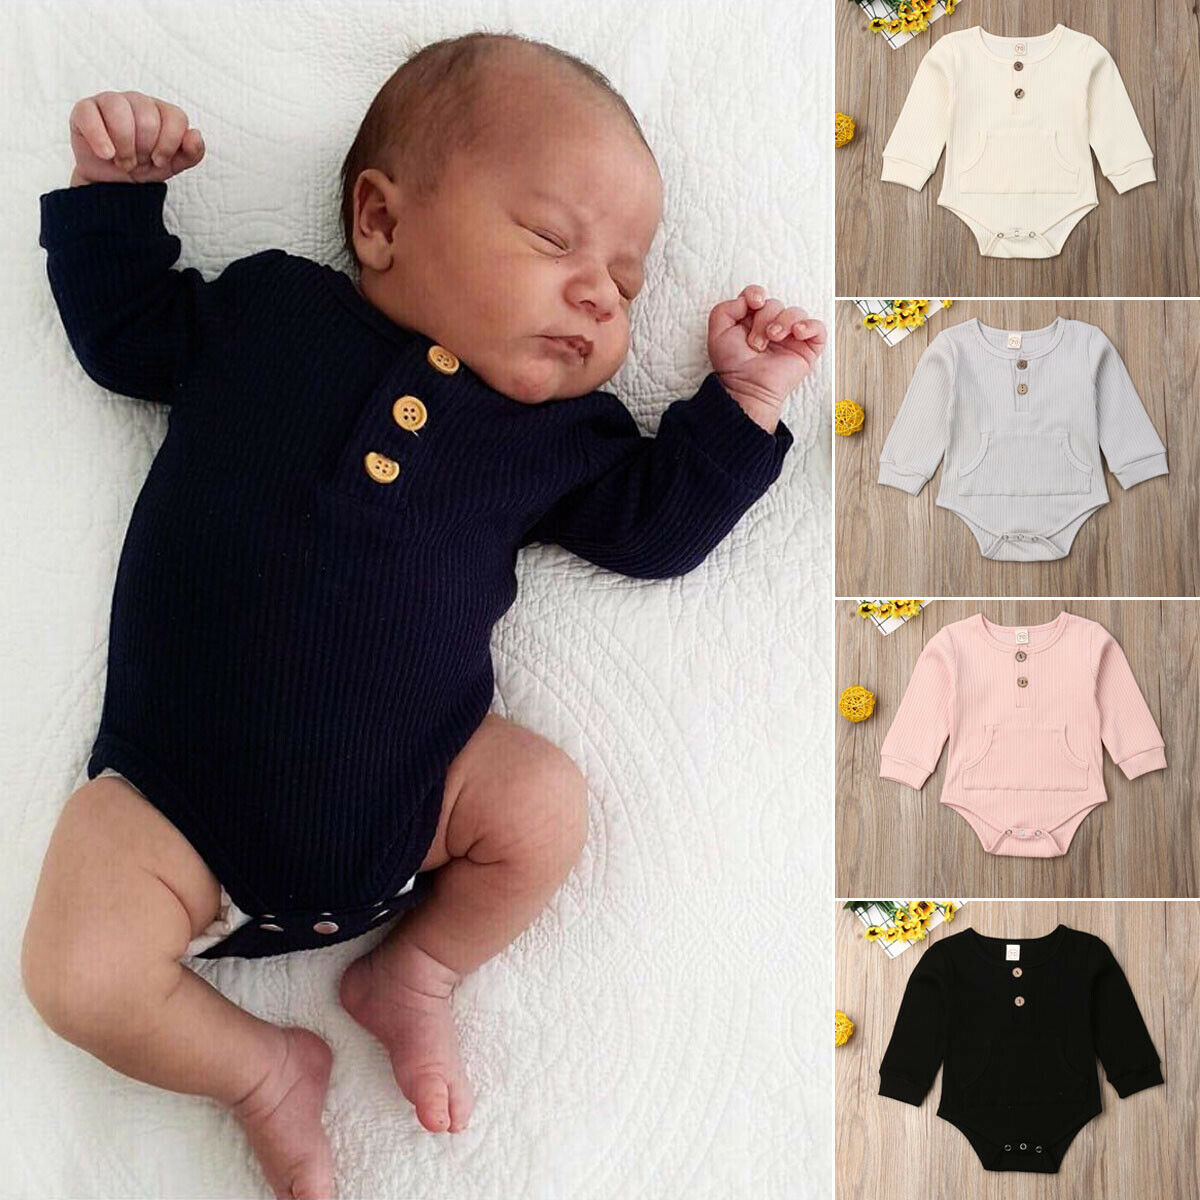 Pudcoco Newborn Infant Baby Boy Girl Bodysuit Cotton Soild Jumpsuit Long Sleeve Playsuit Clothes Spring 2020 New Outfit